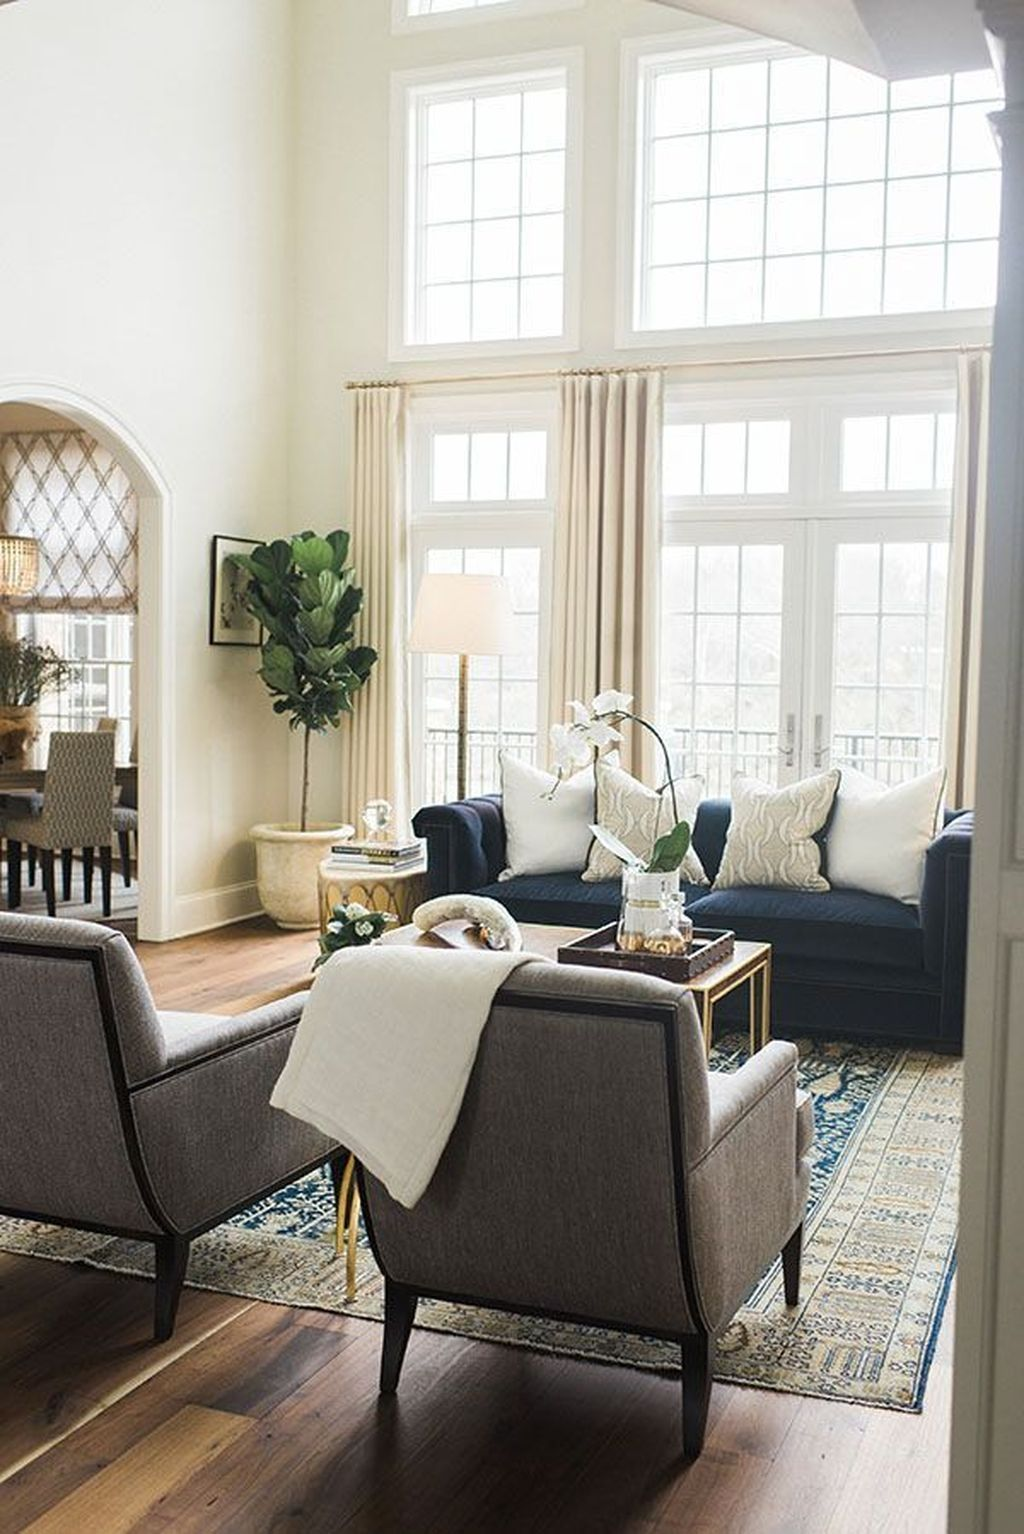 Convert a Formal Living Room into a Home Office | Home ...